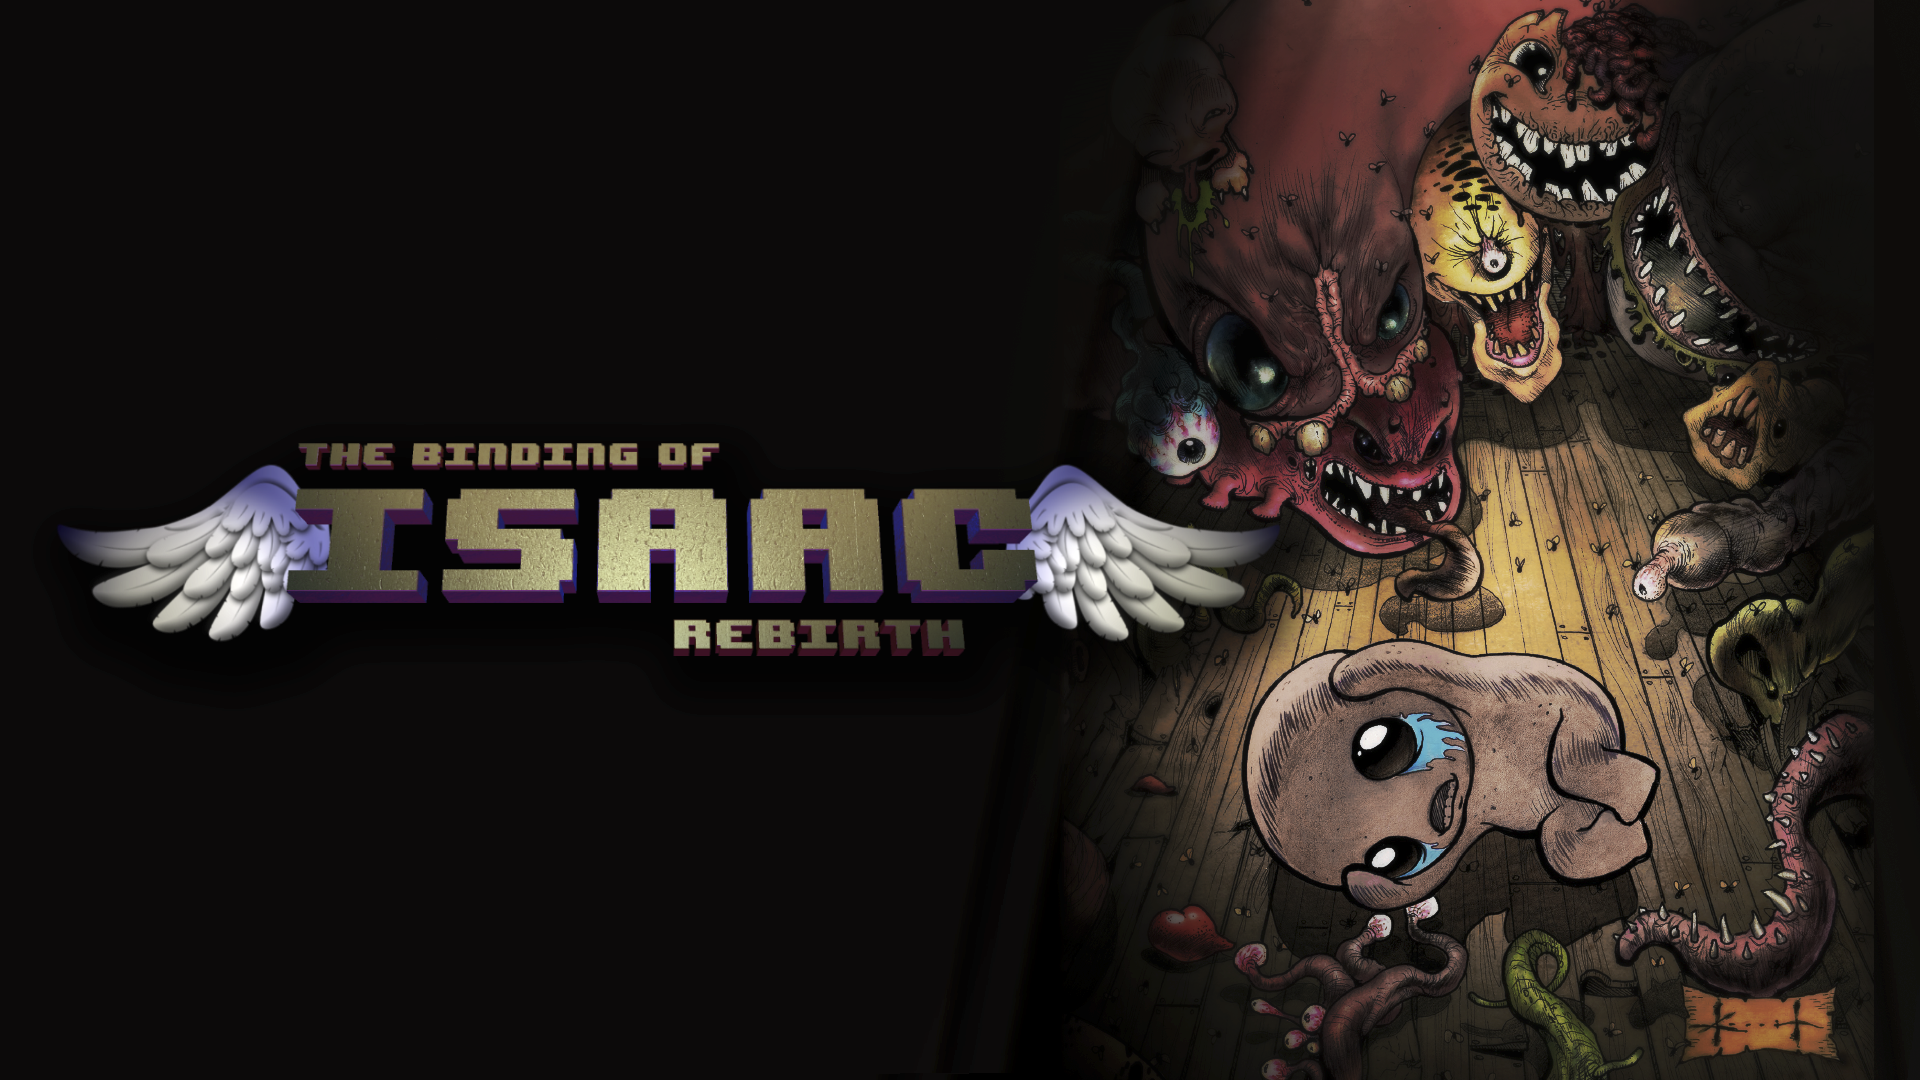 Binding of Isaac: Arte principal de Rebirth